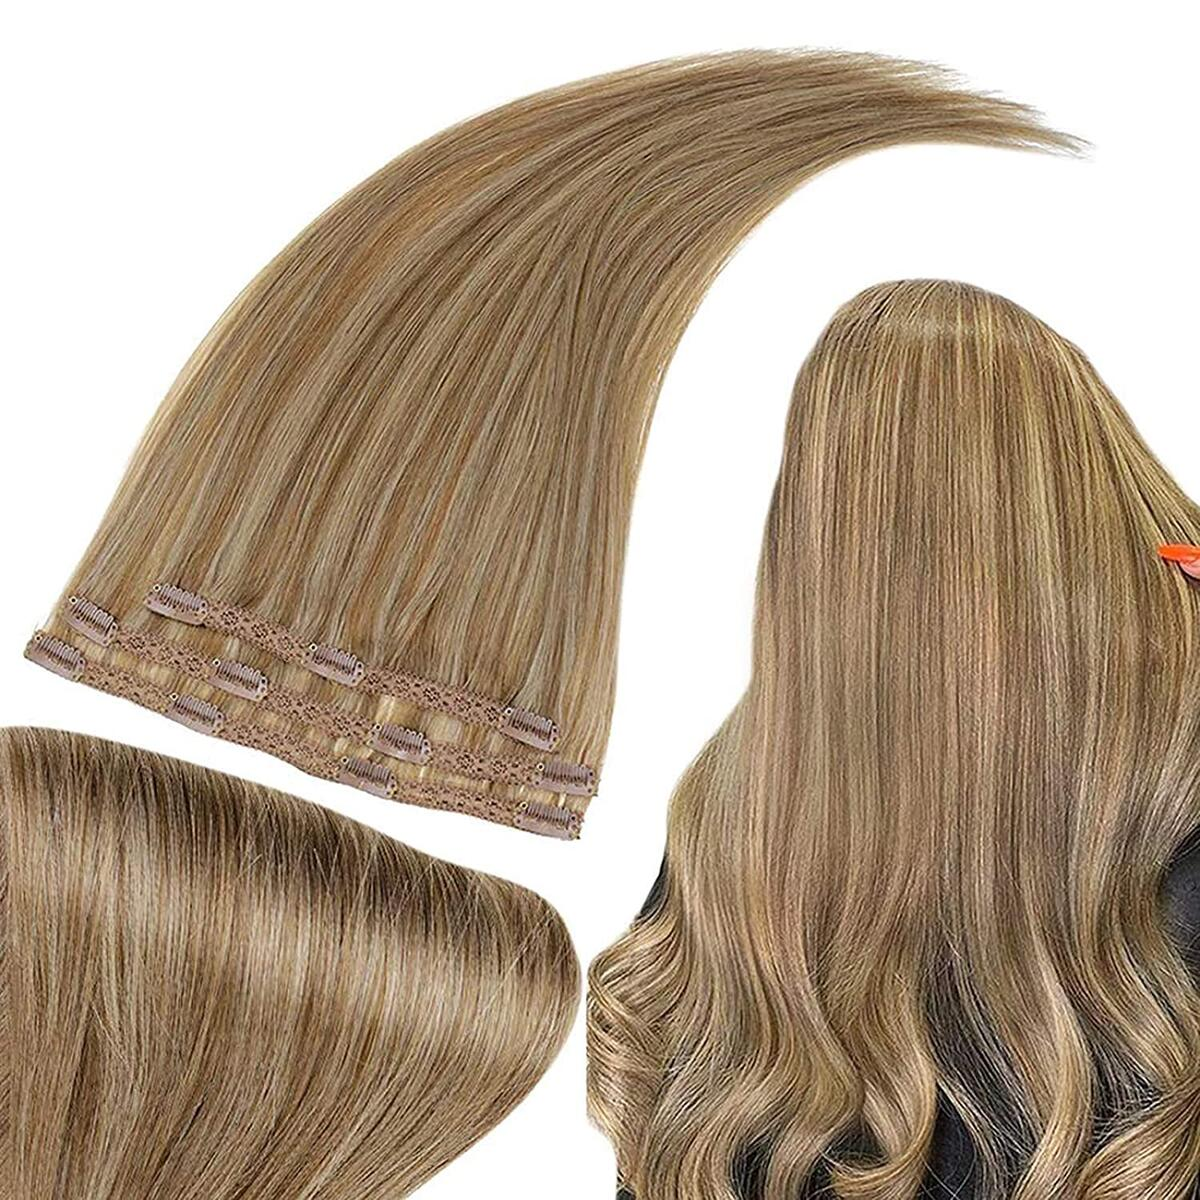 Clip in Hair Extensions 10 Inch Real Hair Extensions Golden Brown Highlighted Golden Blonde 3 Pieces 50g Human Hair Clip in Extensions…